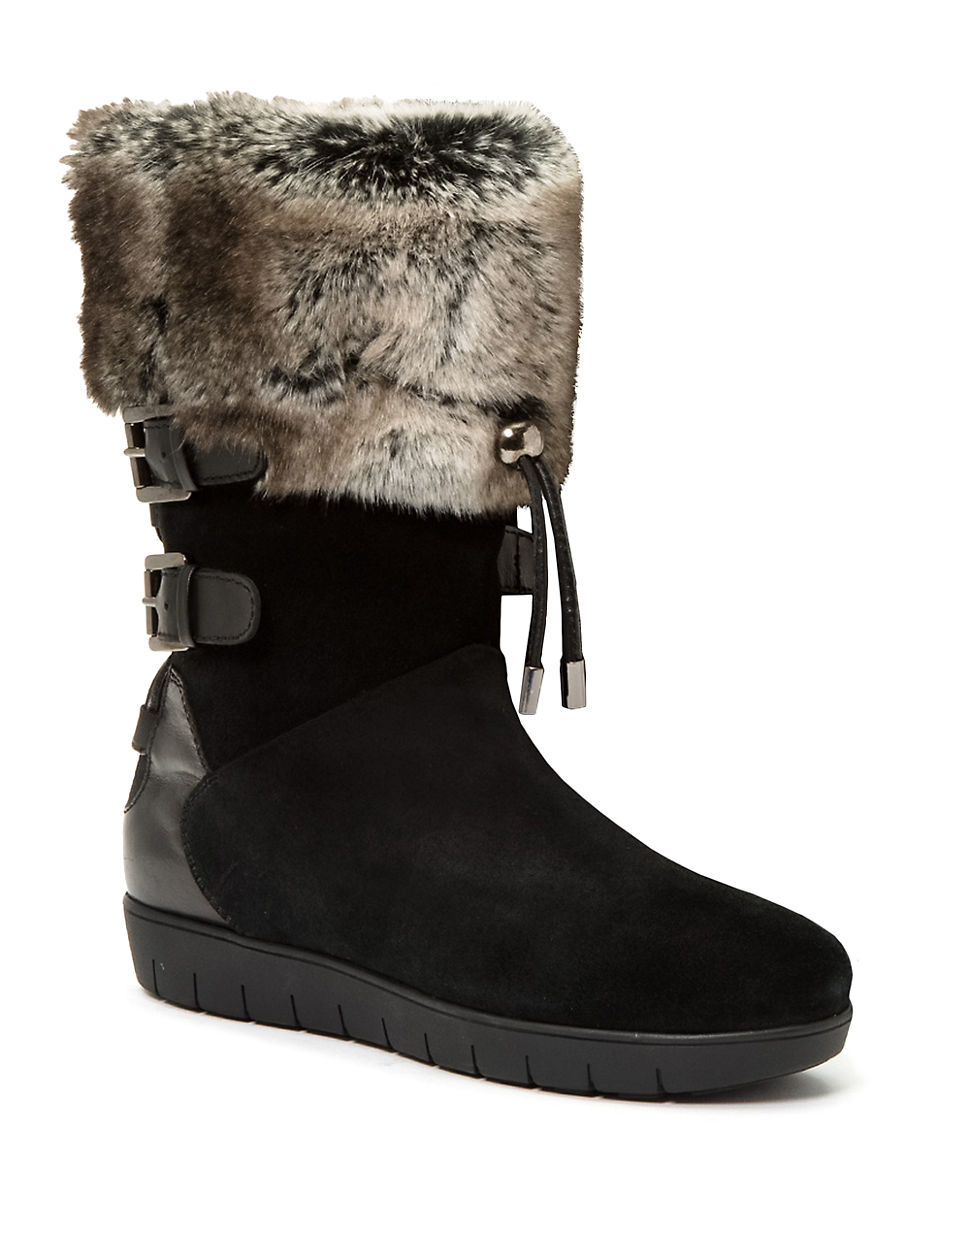 260f2c1c Aquatalia Weslyn Leather And Faux Fur-lined Boots in Black - Lyst